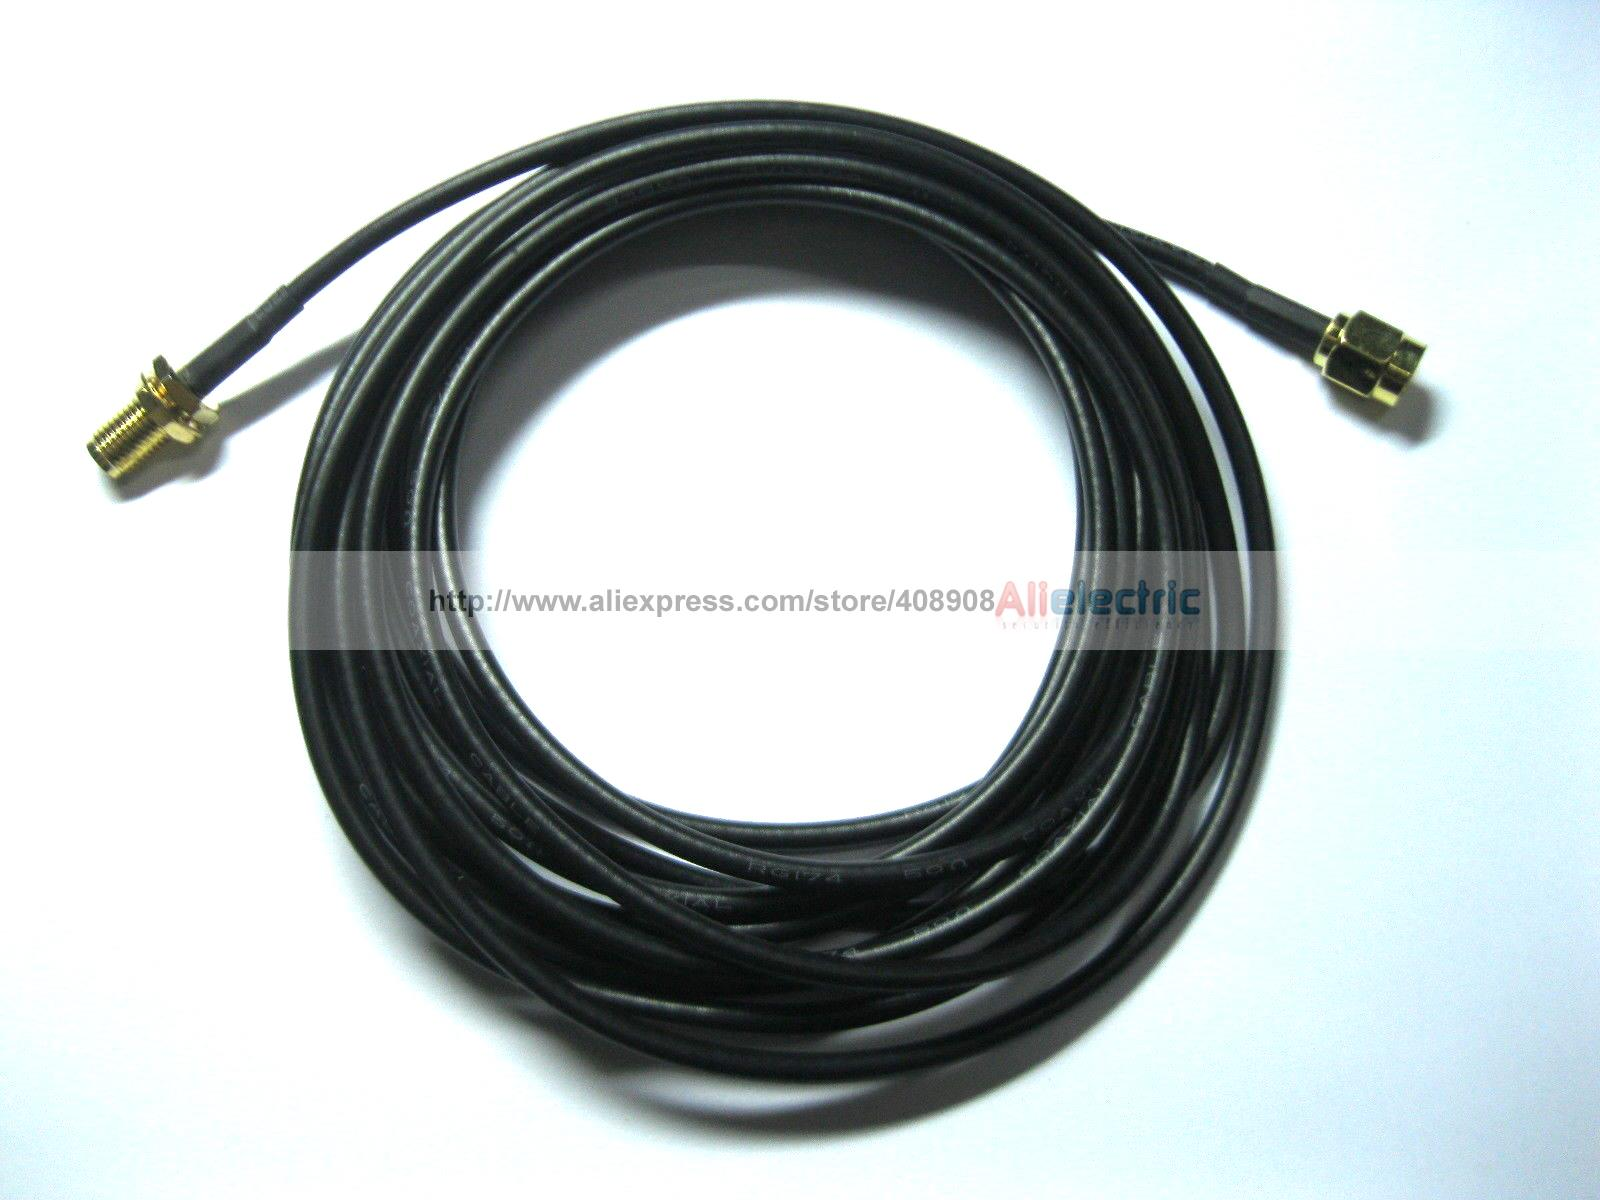 2 Pcs 6M Antenna RP SMA Coaxial Cable for WiFi Router Black 600cm